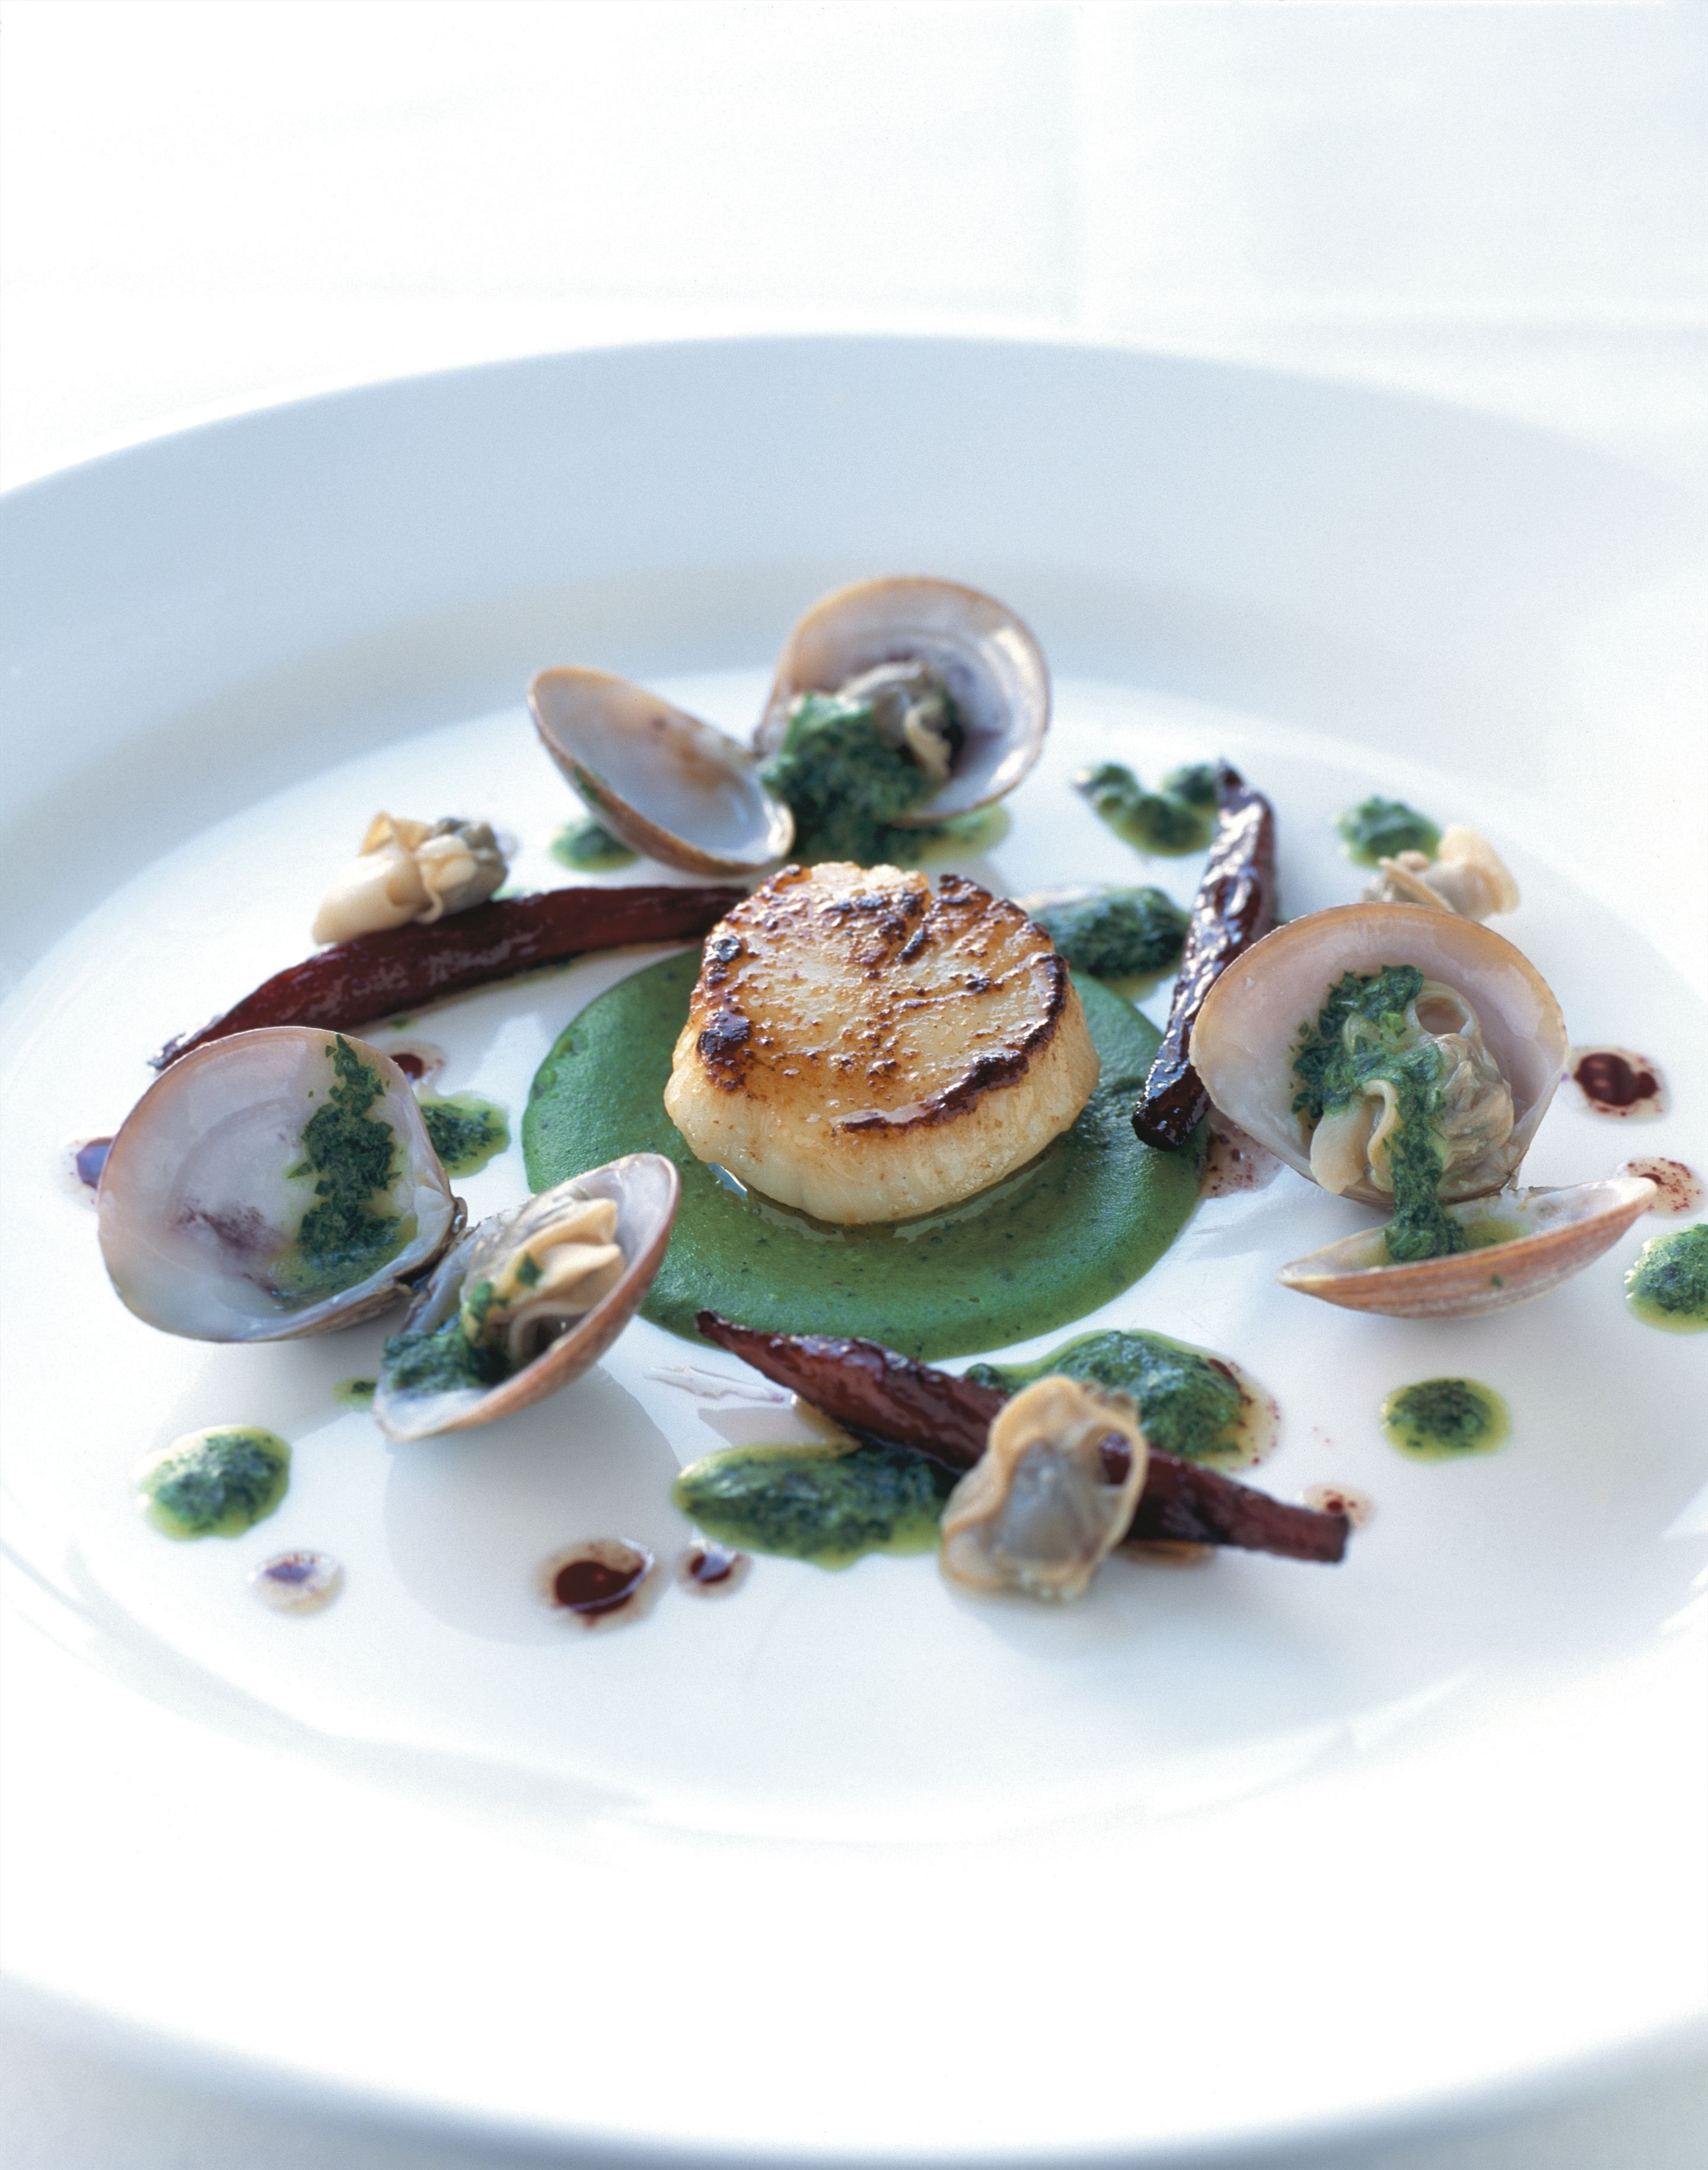 Caramelised scallops with a fricassée of clams and salsify